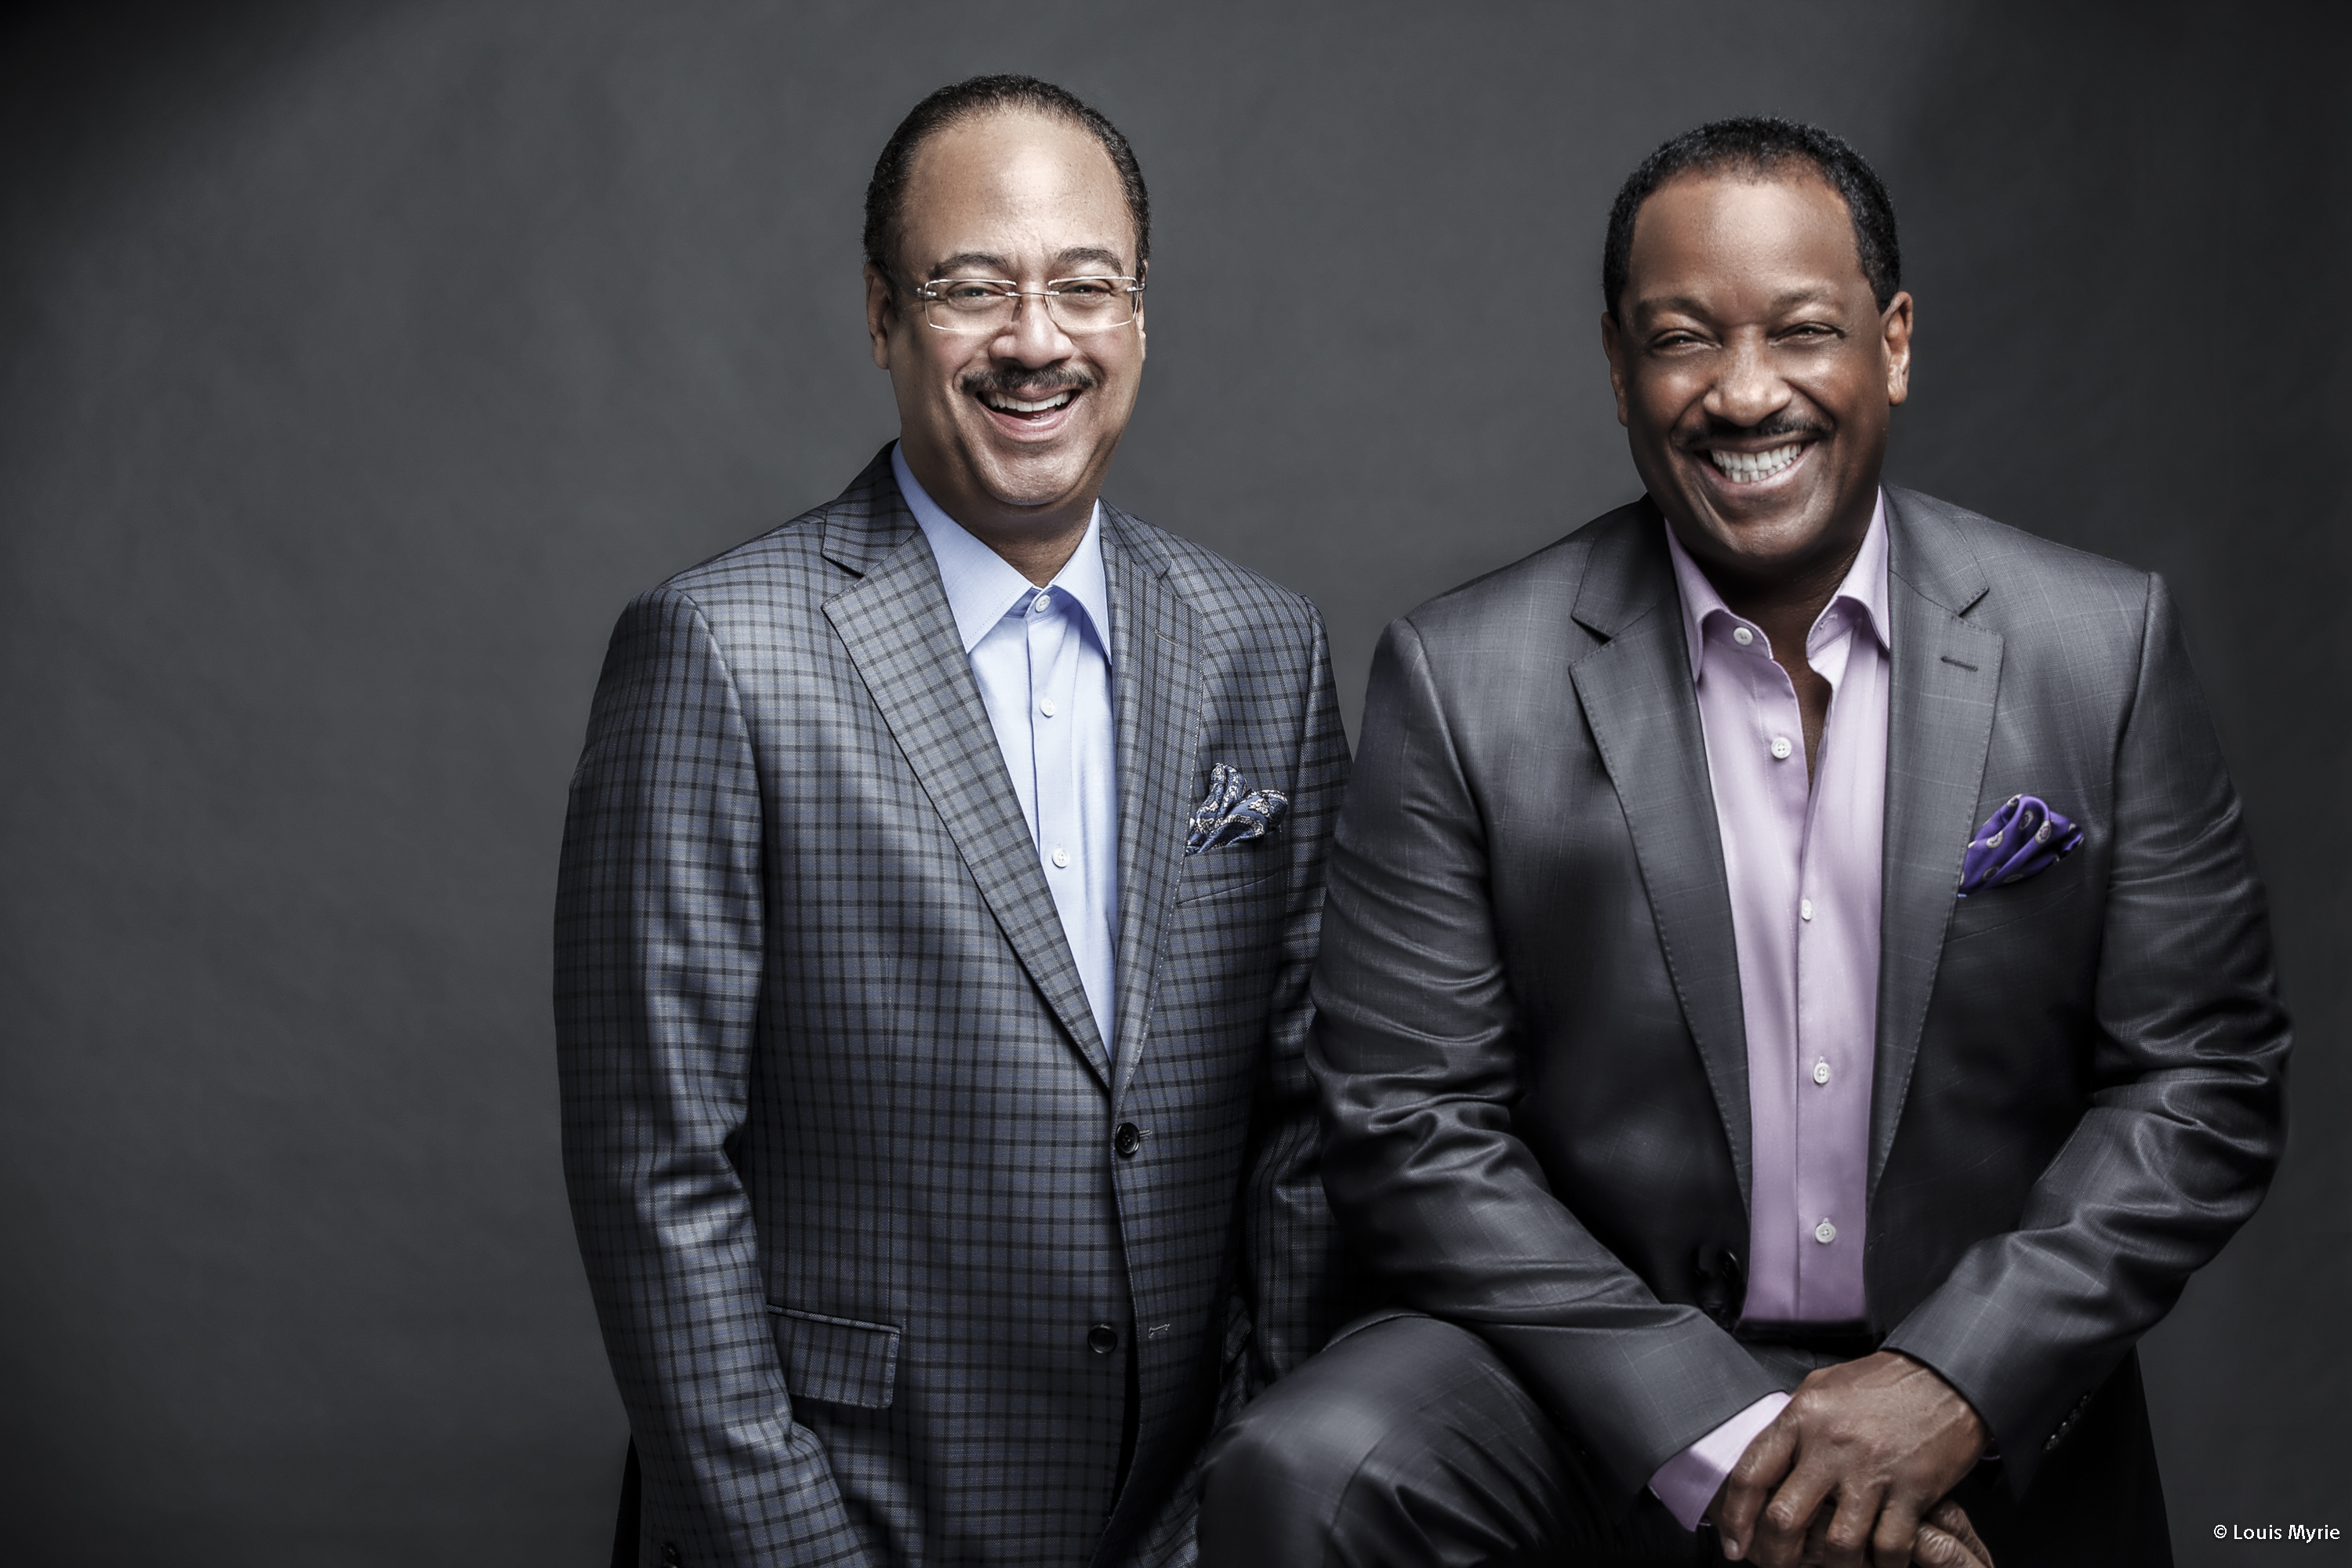 Donnie Simpson & Tony Perkins